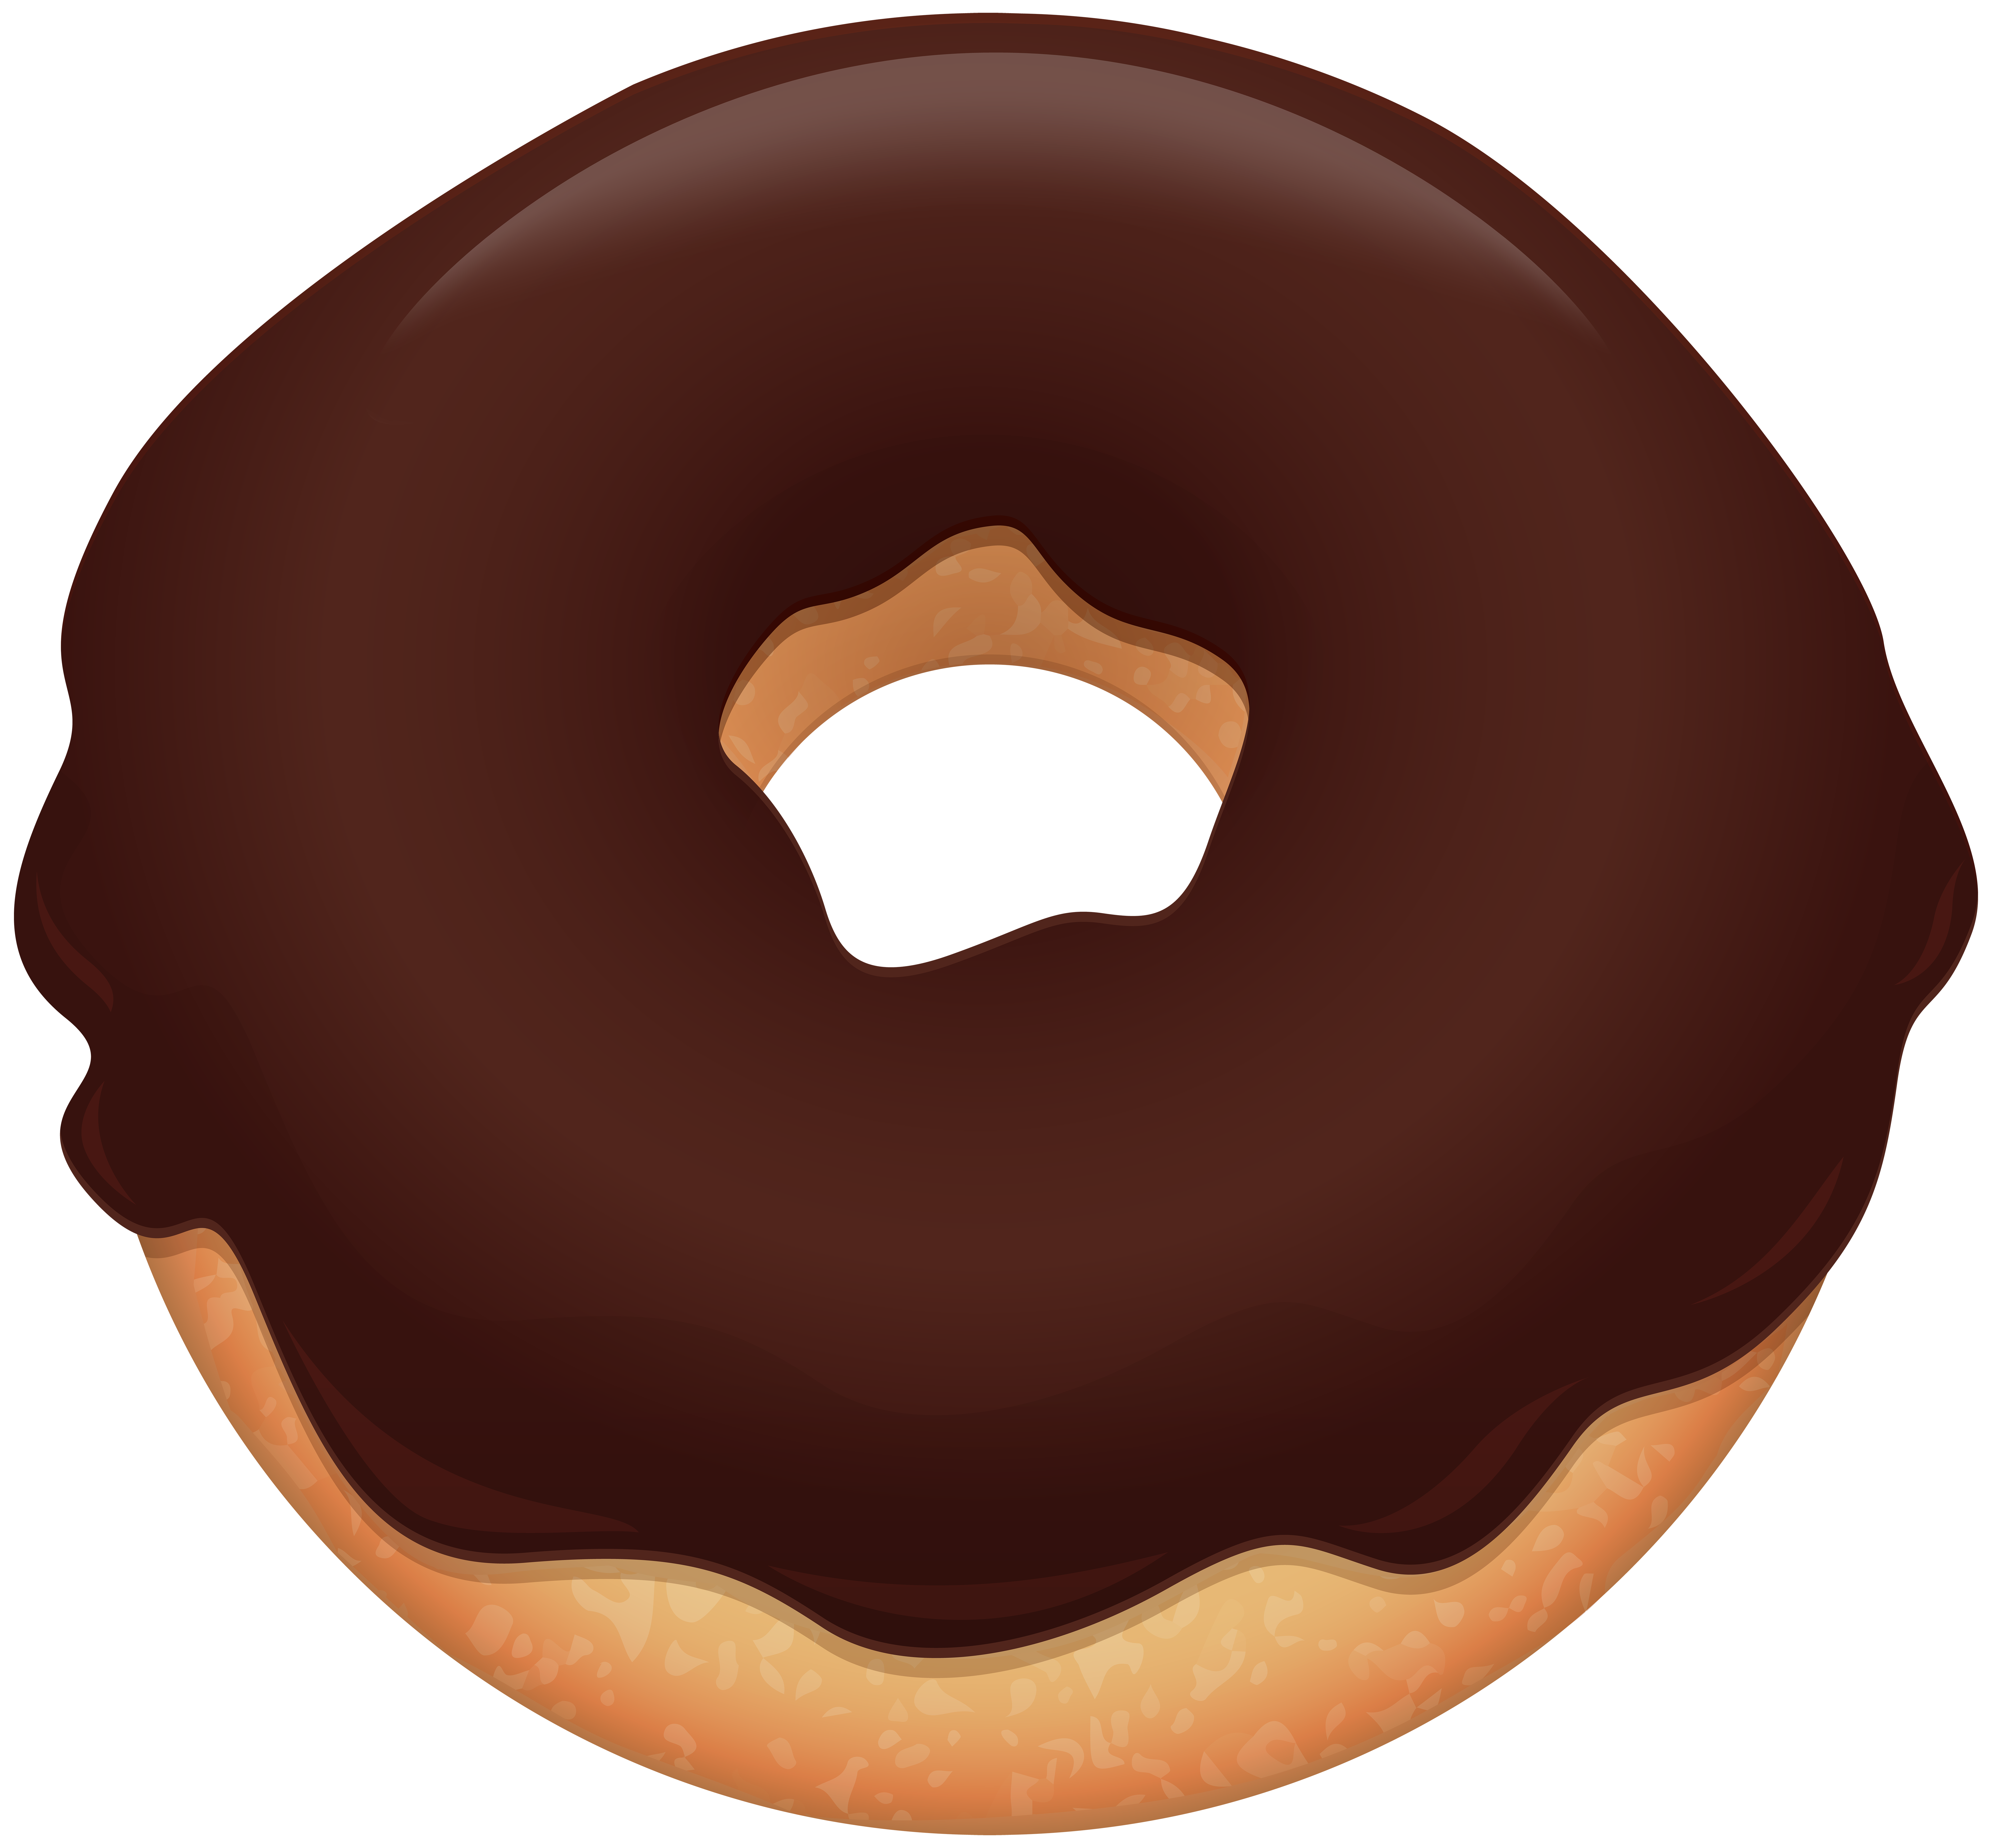 Donut png clip art. Donuts clipart valentines